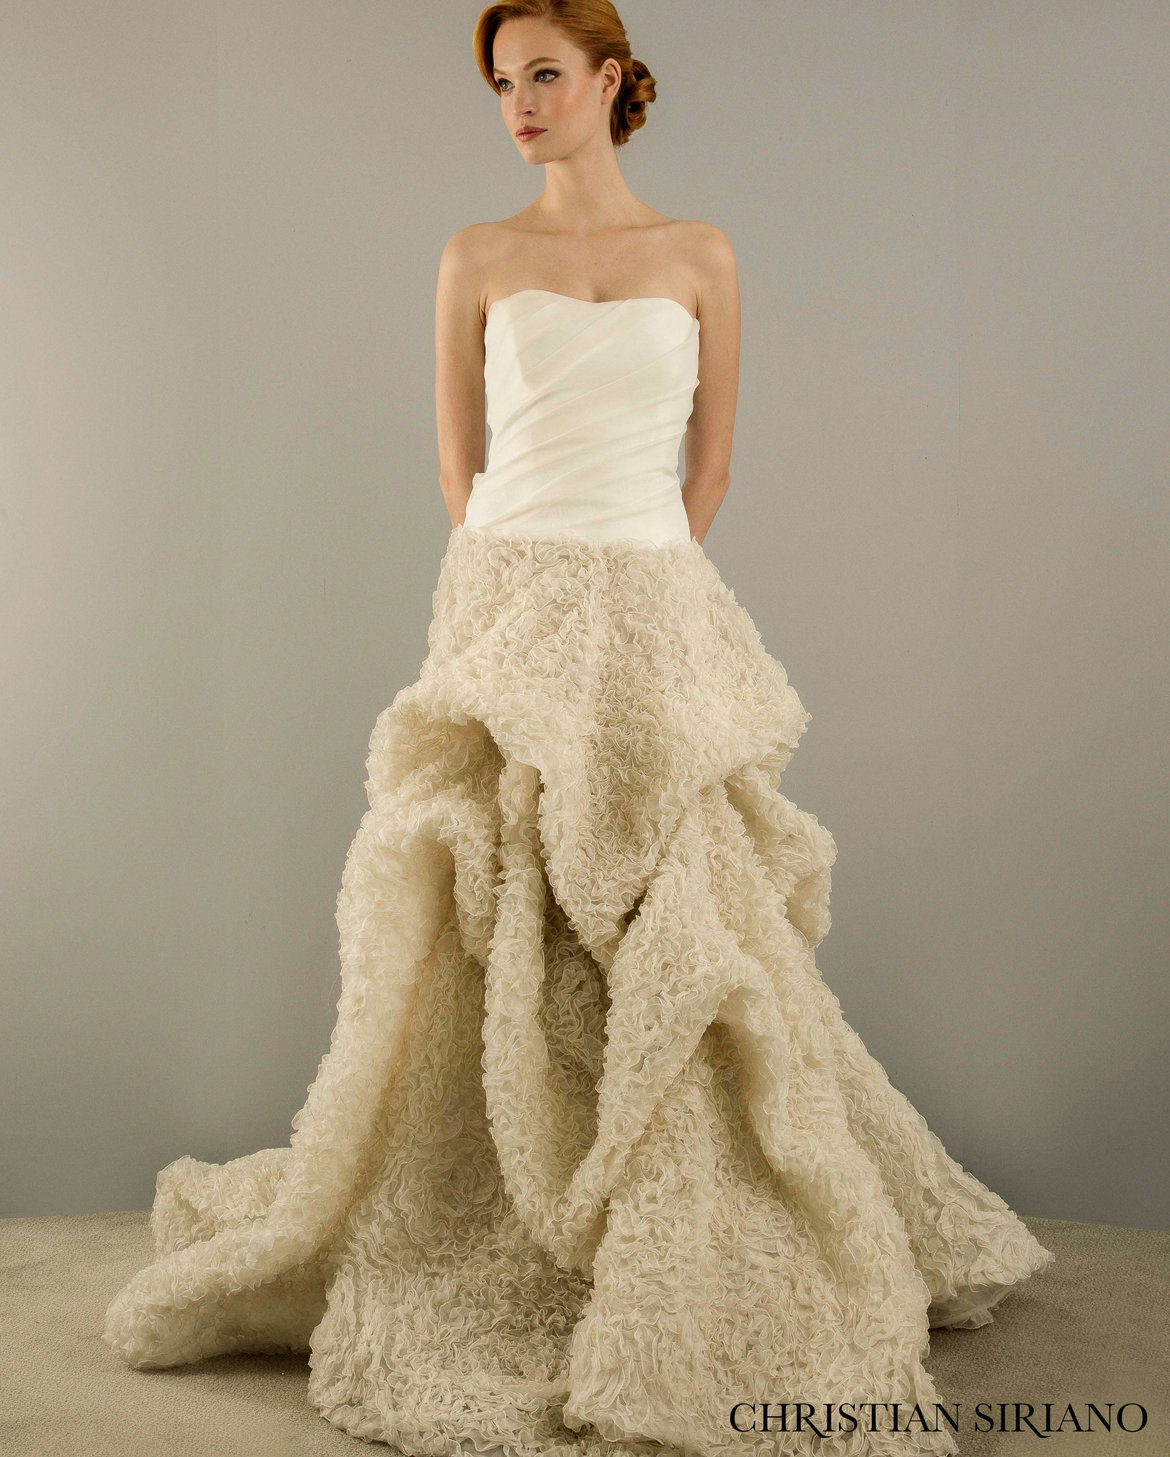 Wedding Gowns In Nyc: First Look: Christian Siriano's New Bridal Collection For